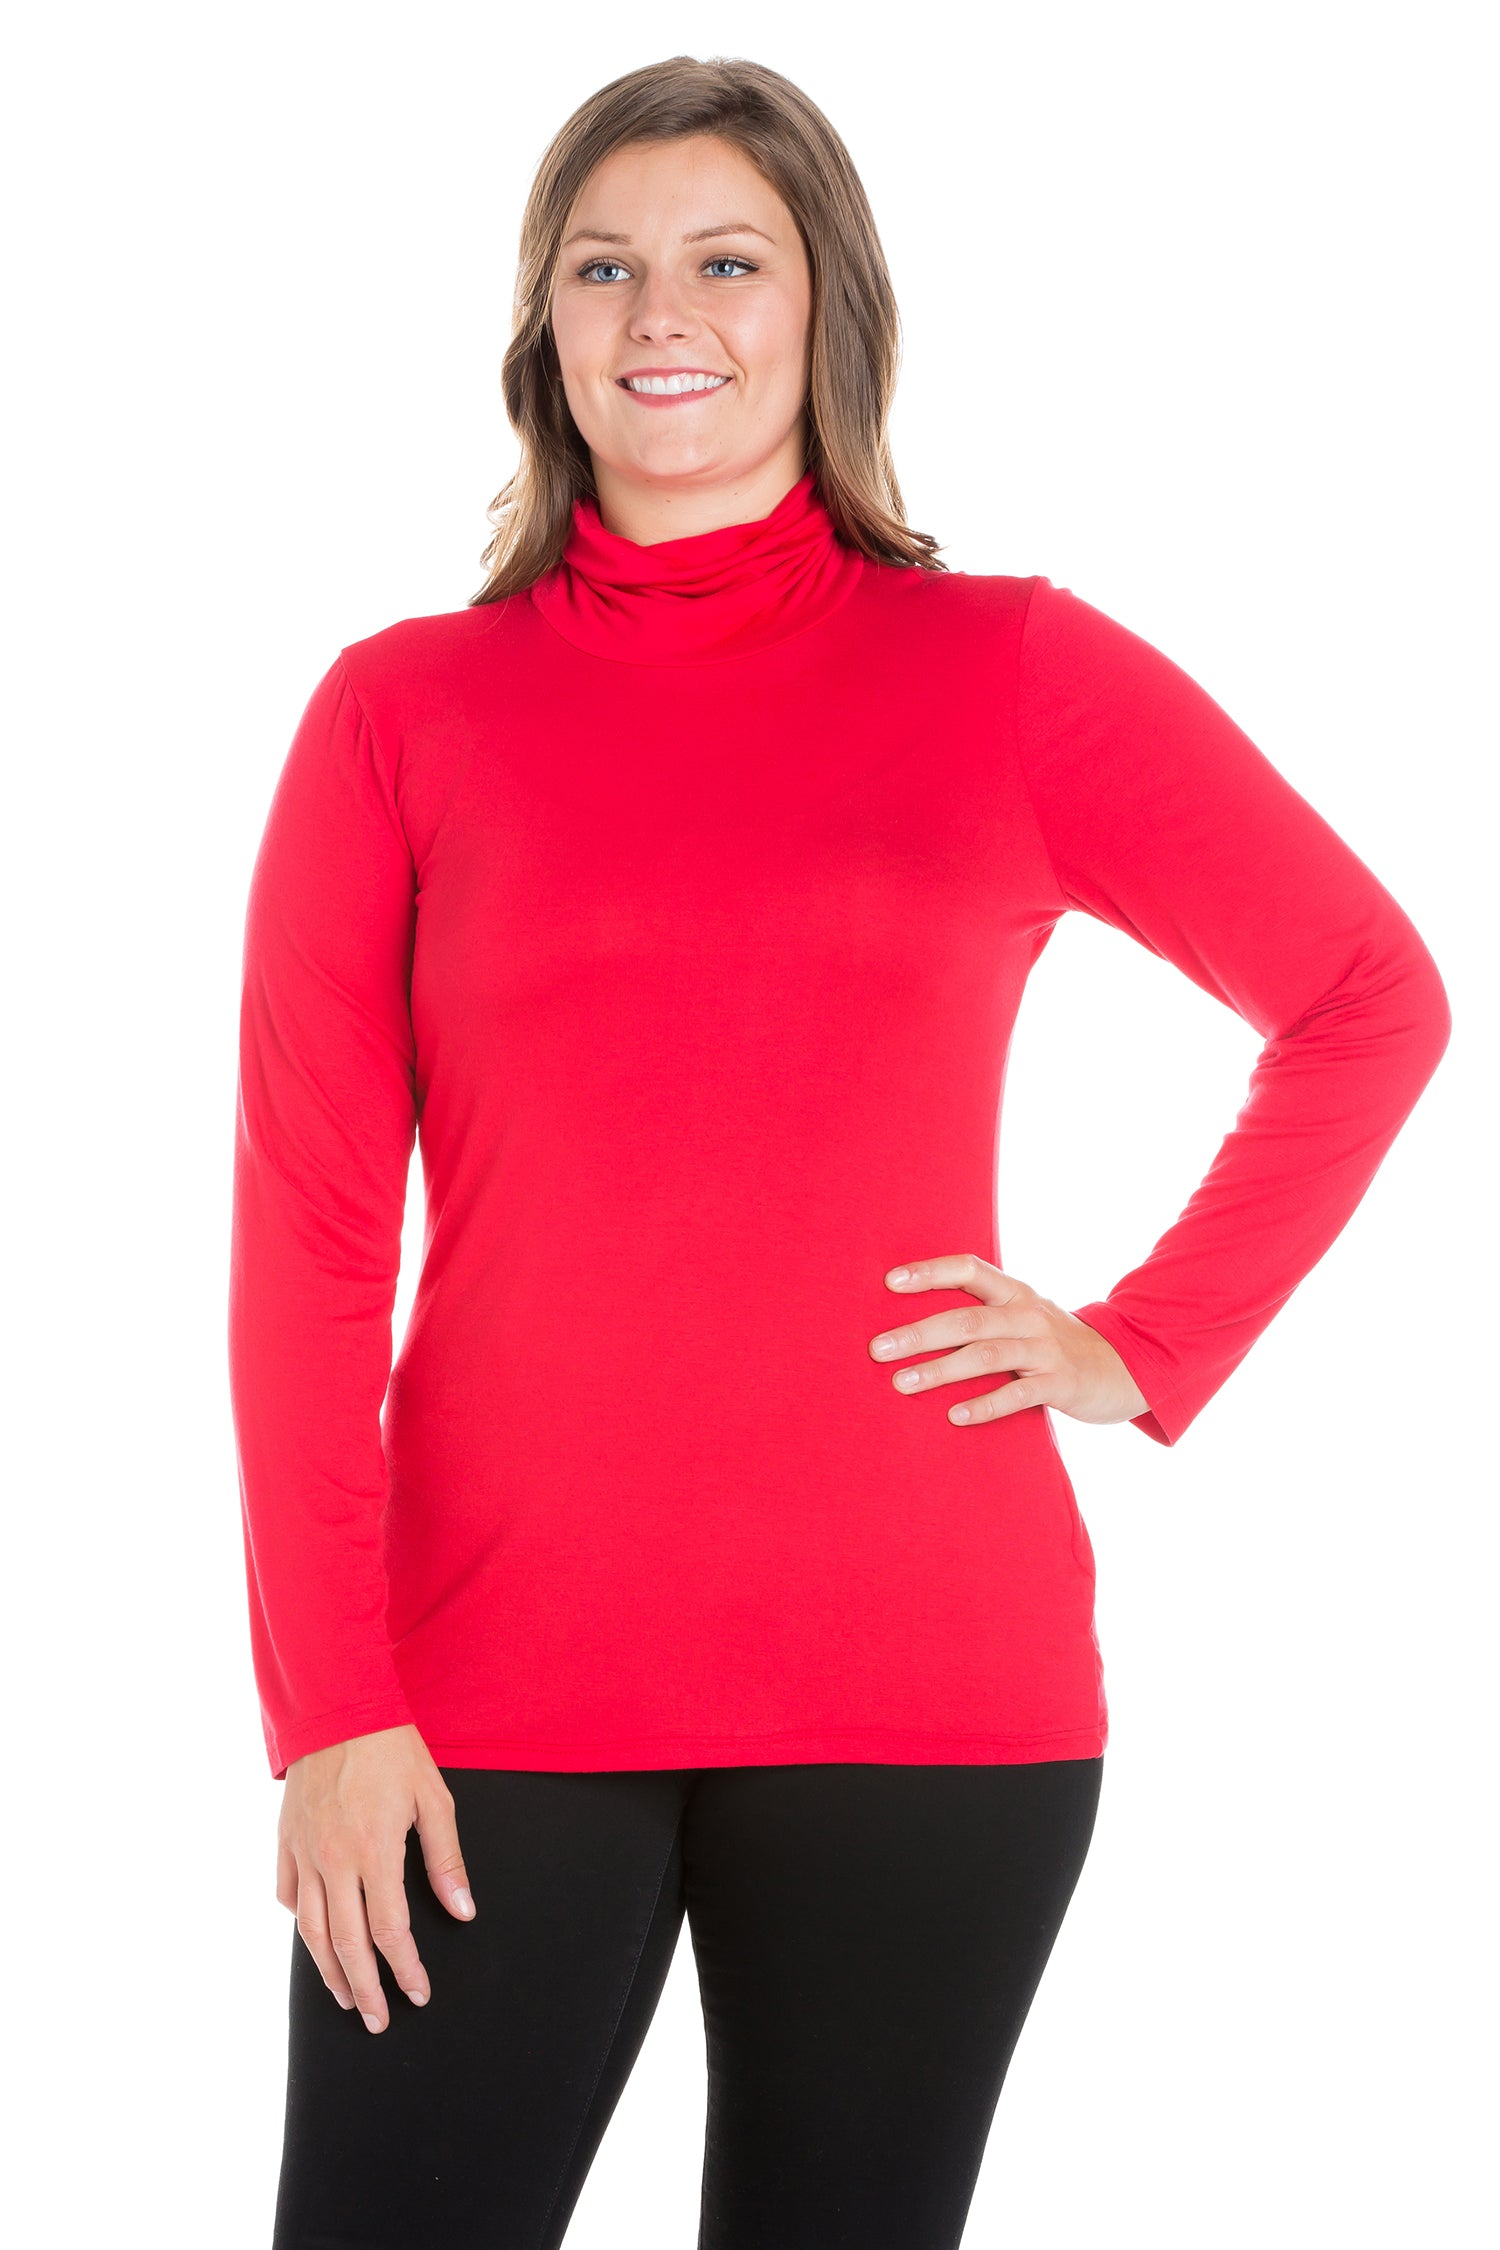 24seven Comfort Apparel Classic Womens Plus Size Long Sleeve Turtleneck-TOPS-24Seven Comfort Apparel-RED-1X-24/7 Comfort Apparel